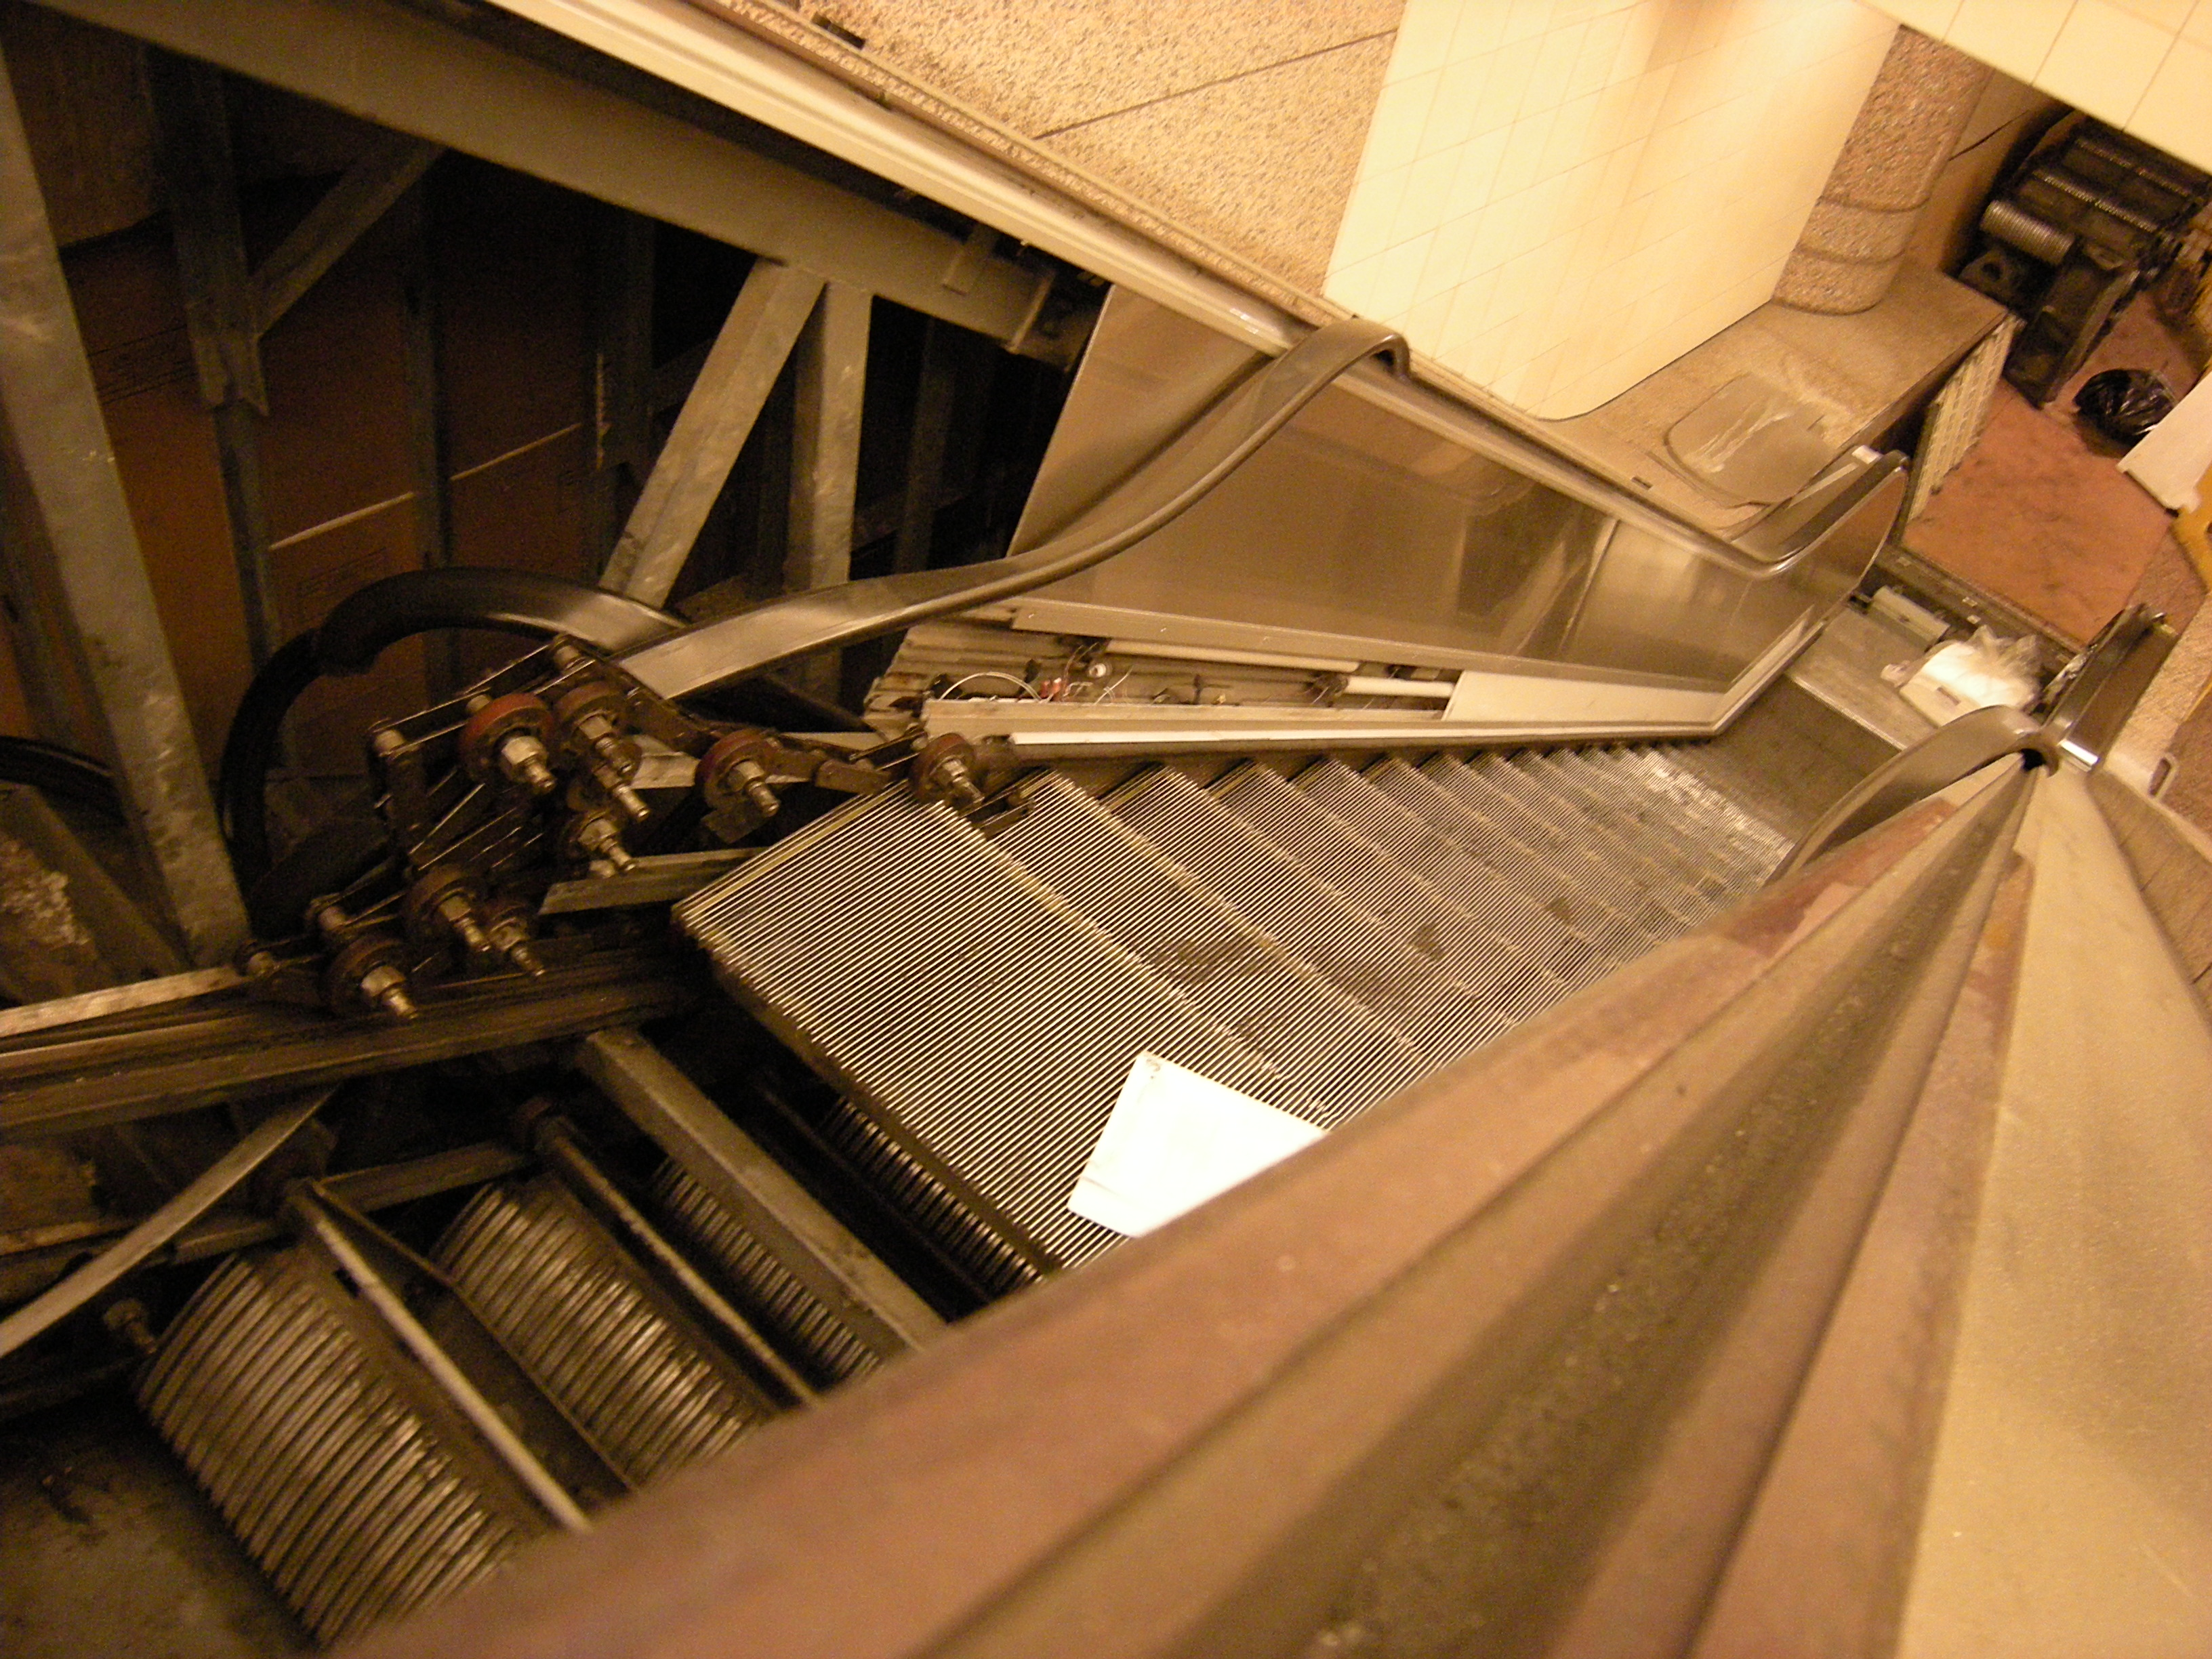 View of escalator steps on continuous chain